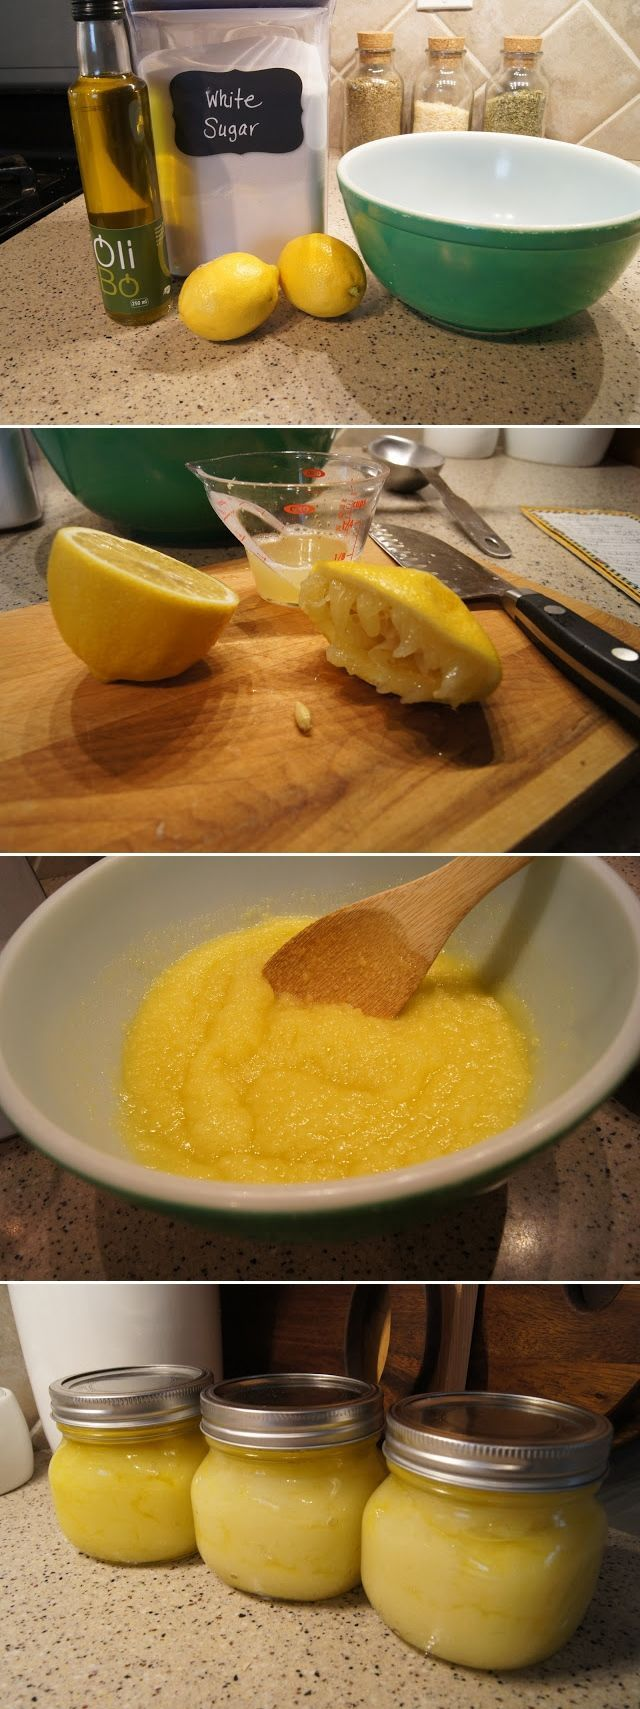 Home made face scrub. Lemon, sugar and a dash of oil. Personally I'd lay off the oil but each to their own :-)